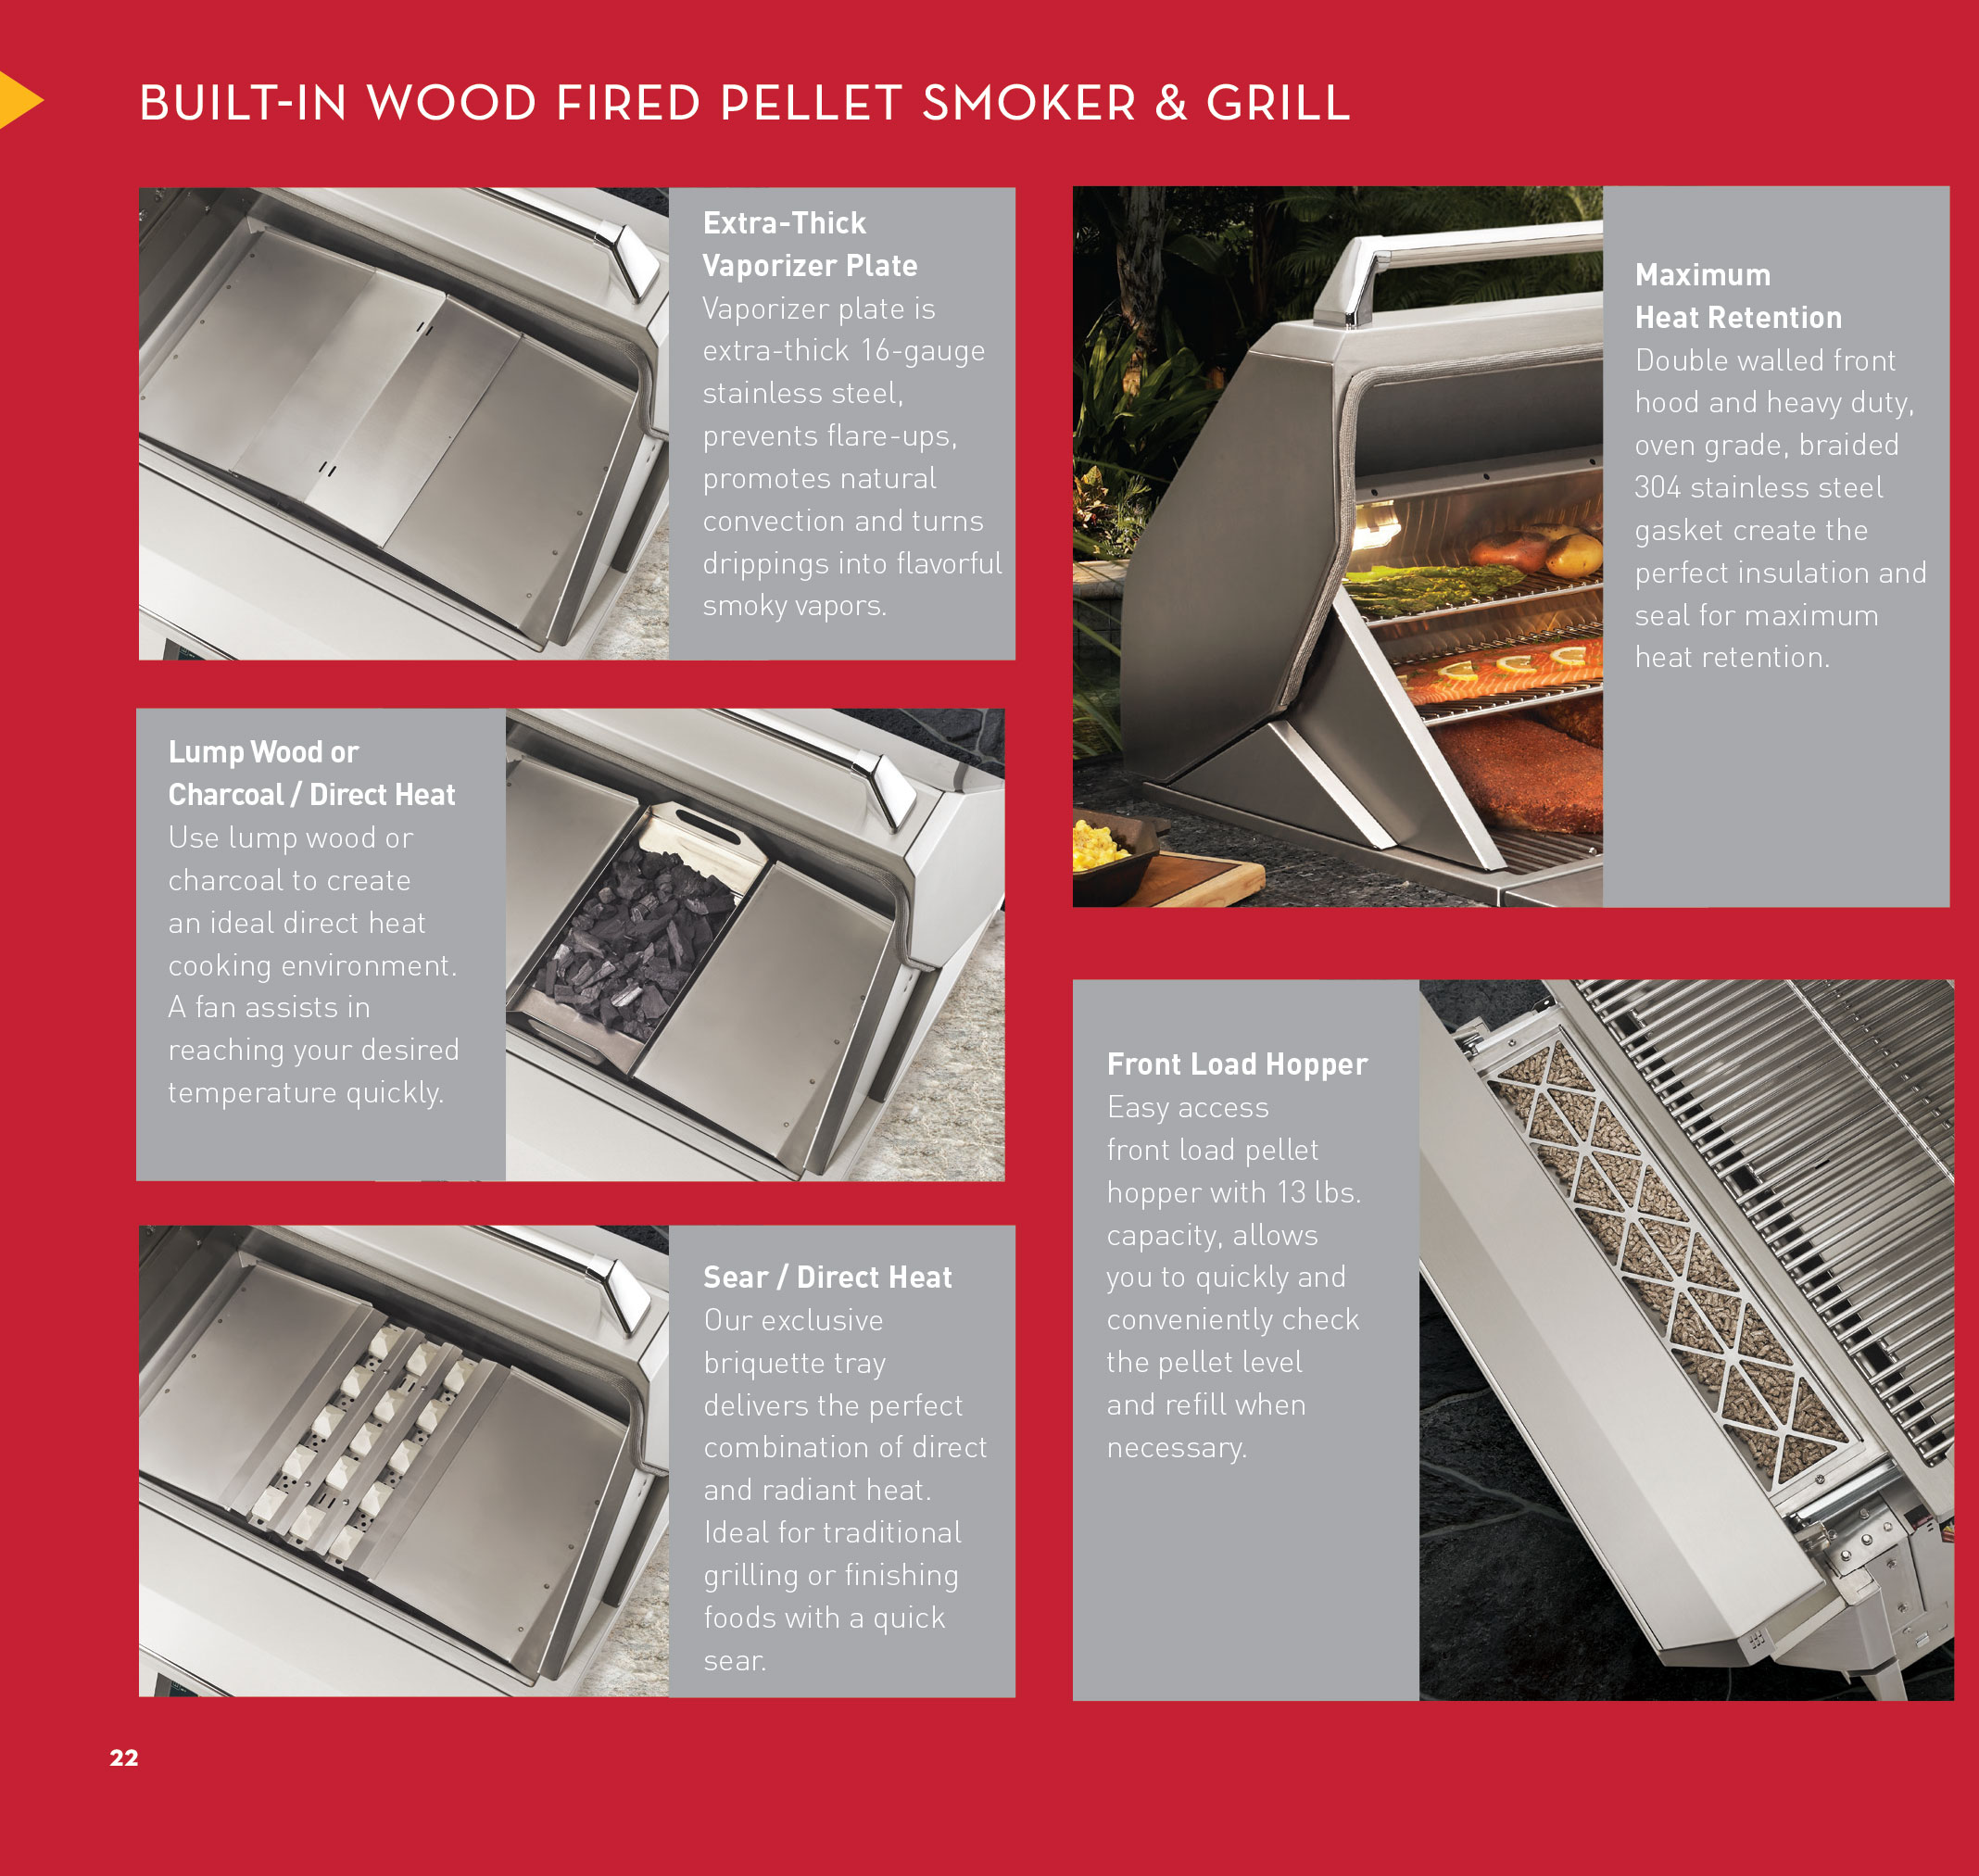 Twin Eagles 36 Quot Wood Fired Pellet Smoker Amp Grill Built In